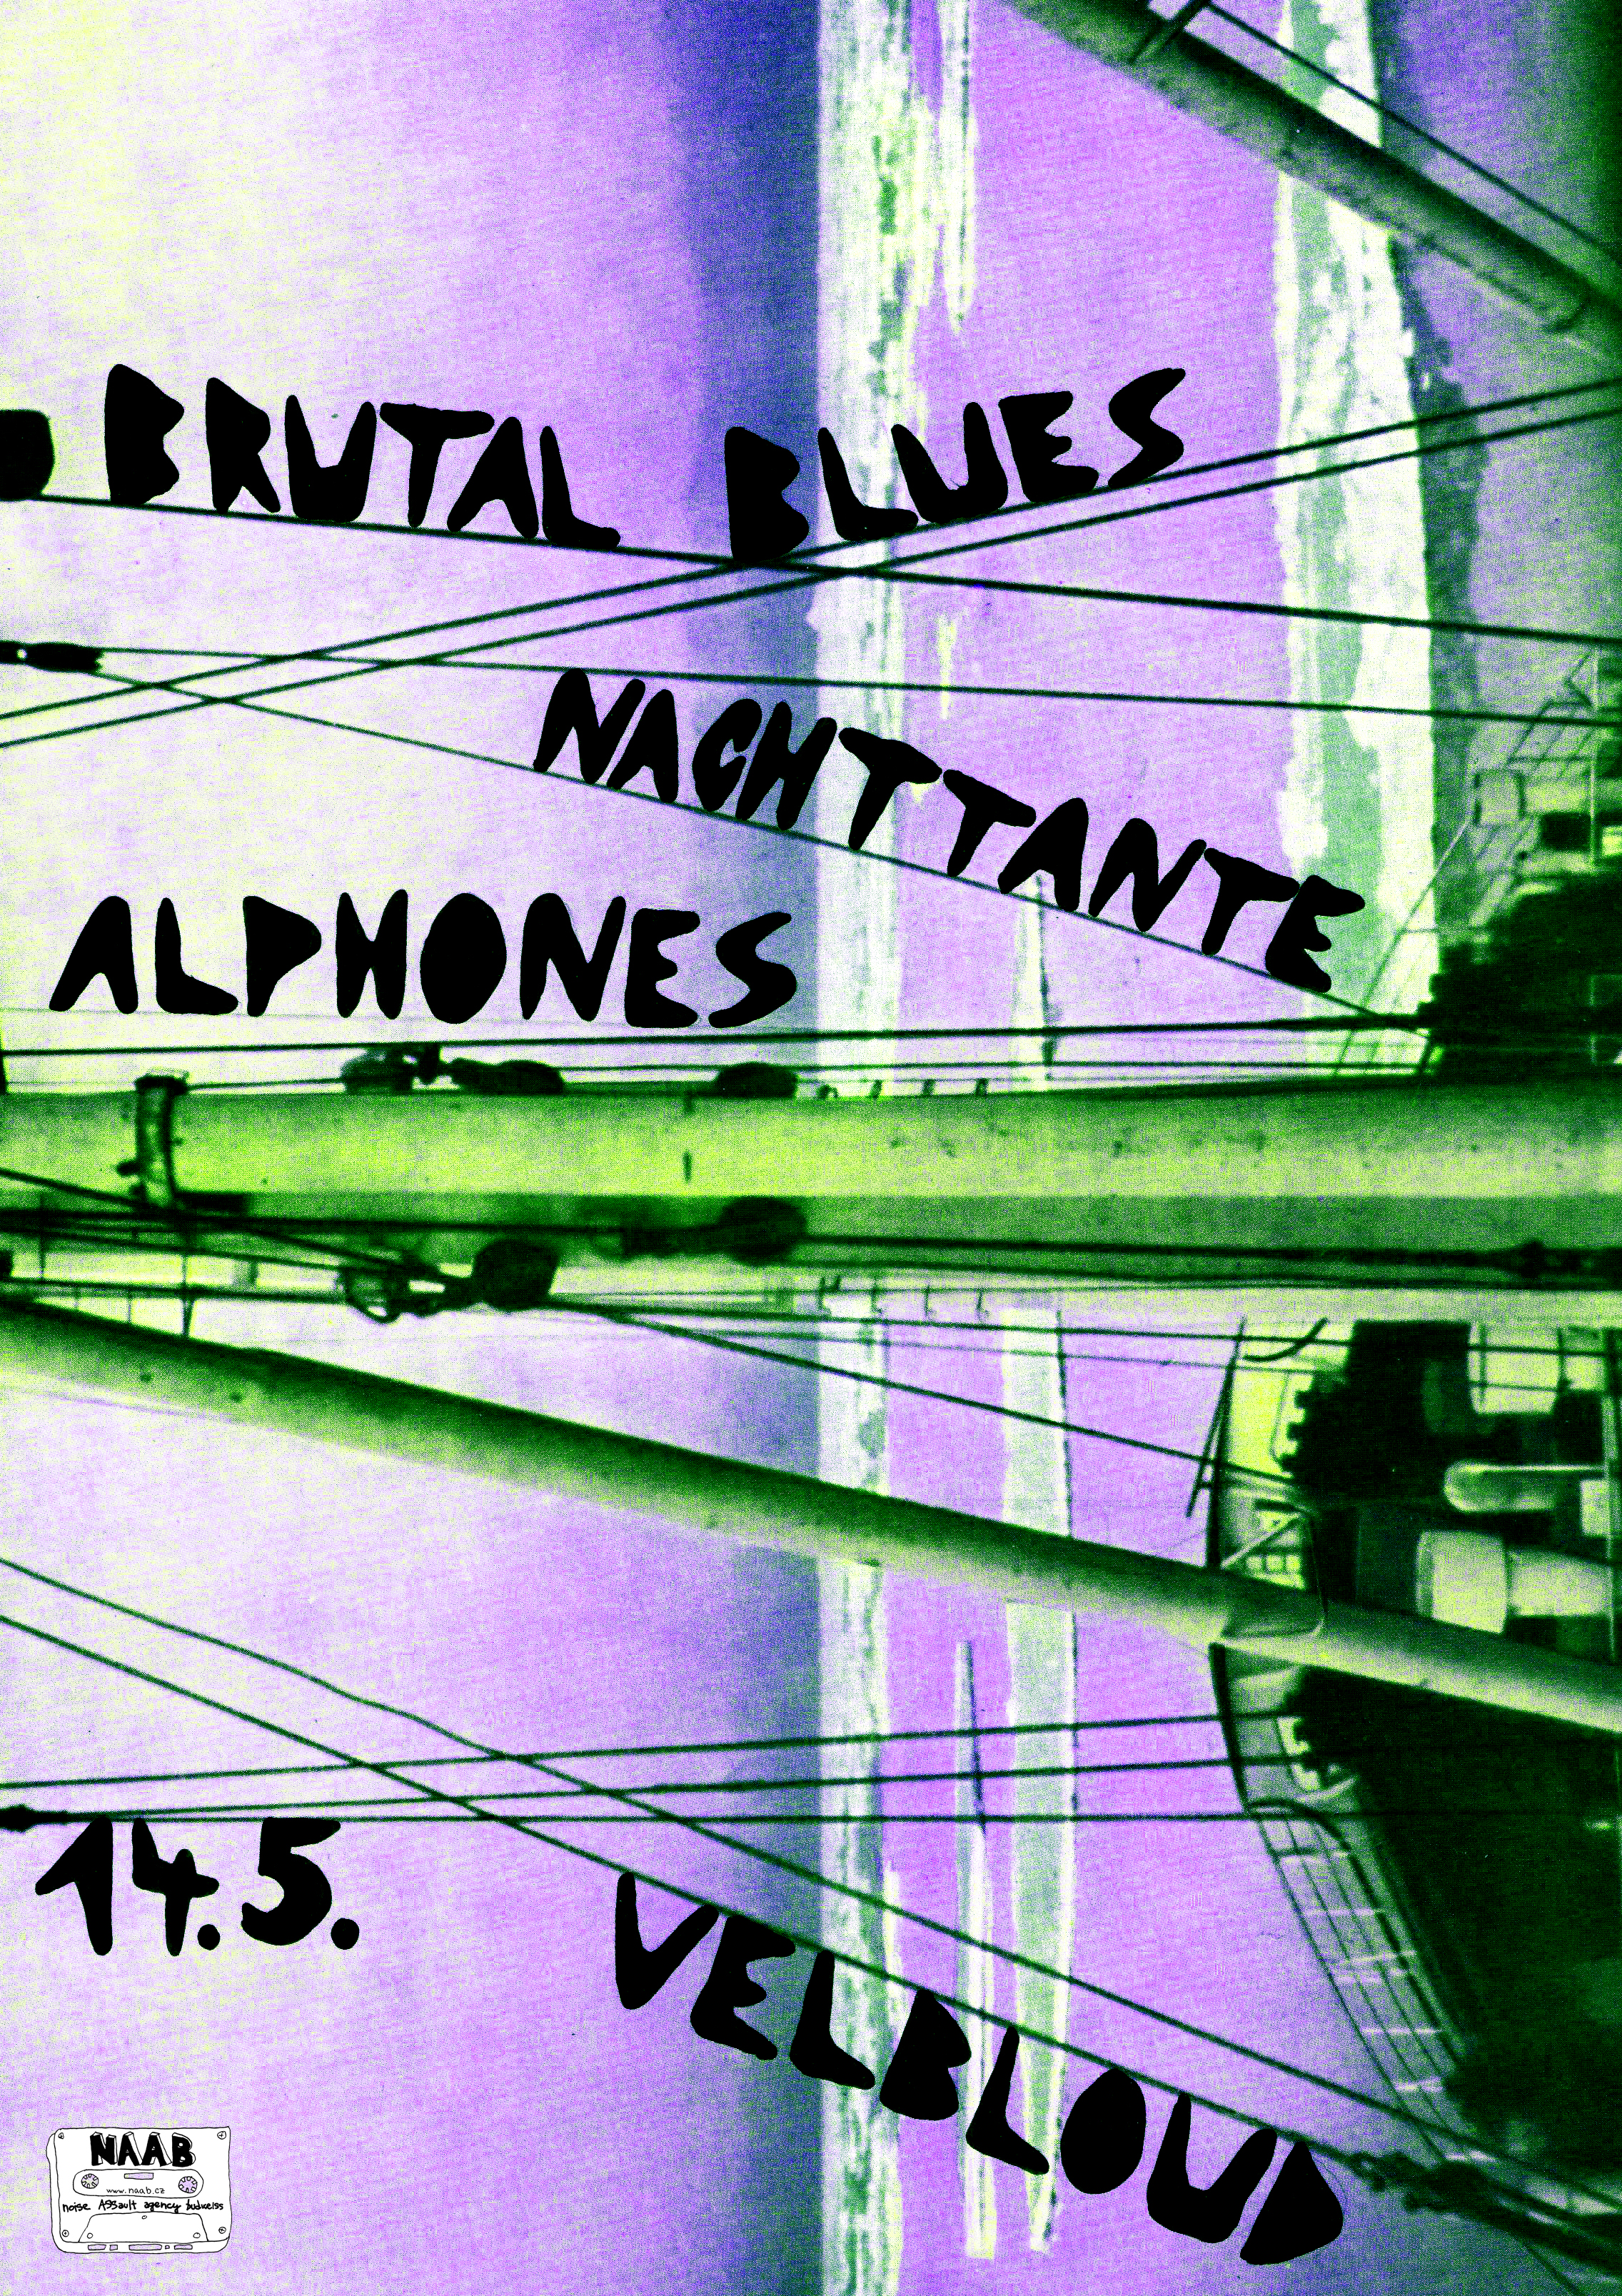 brutal blues nachttante